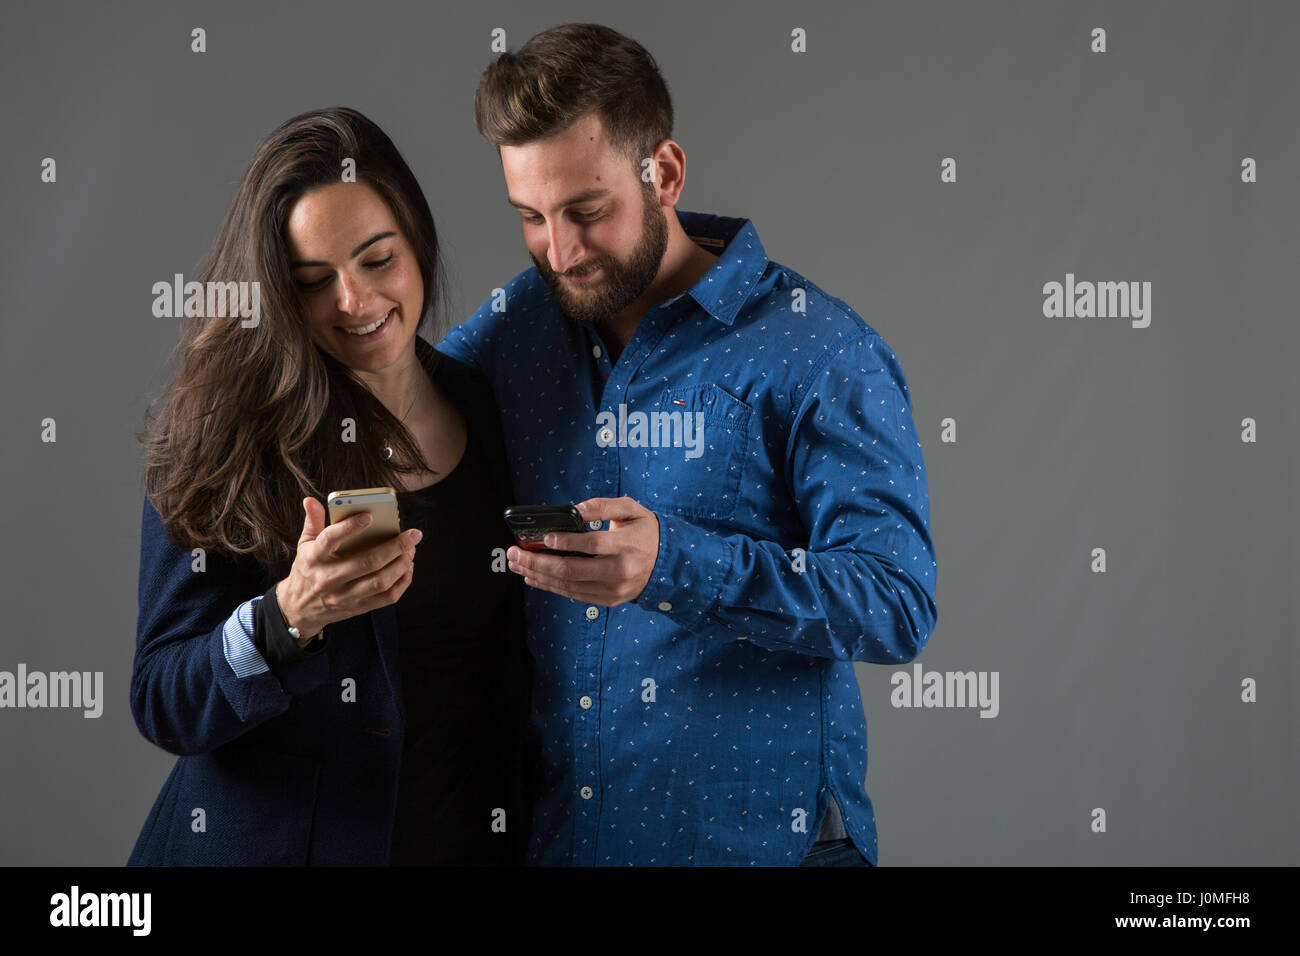 Young couple with tech - Stock Image